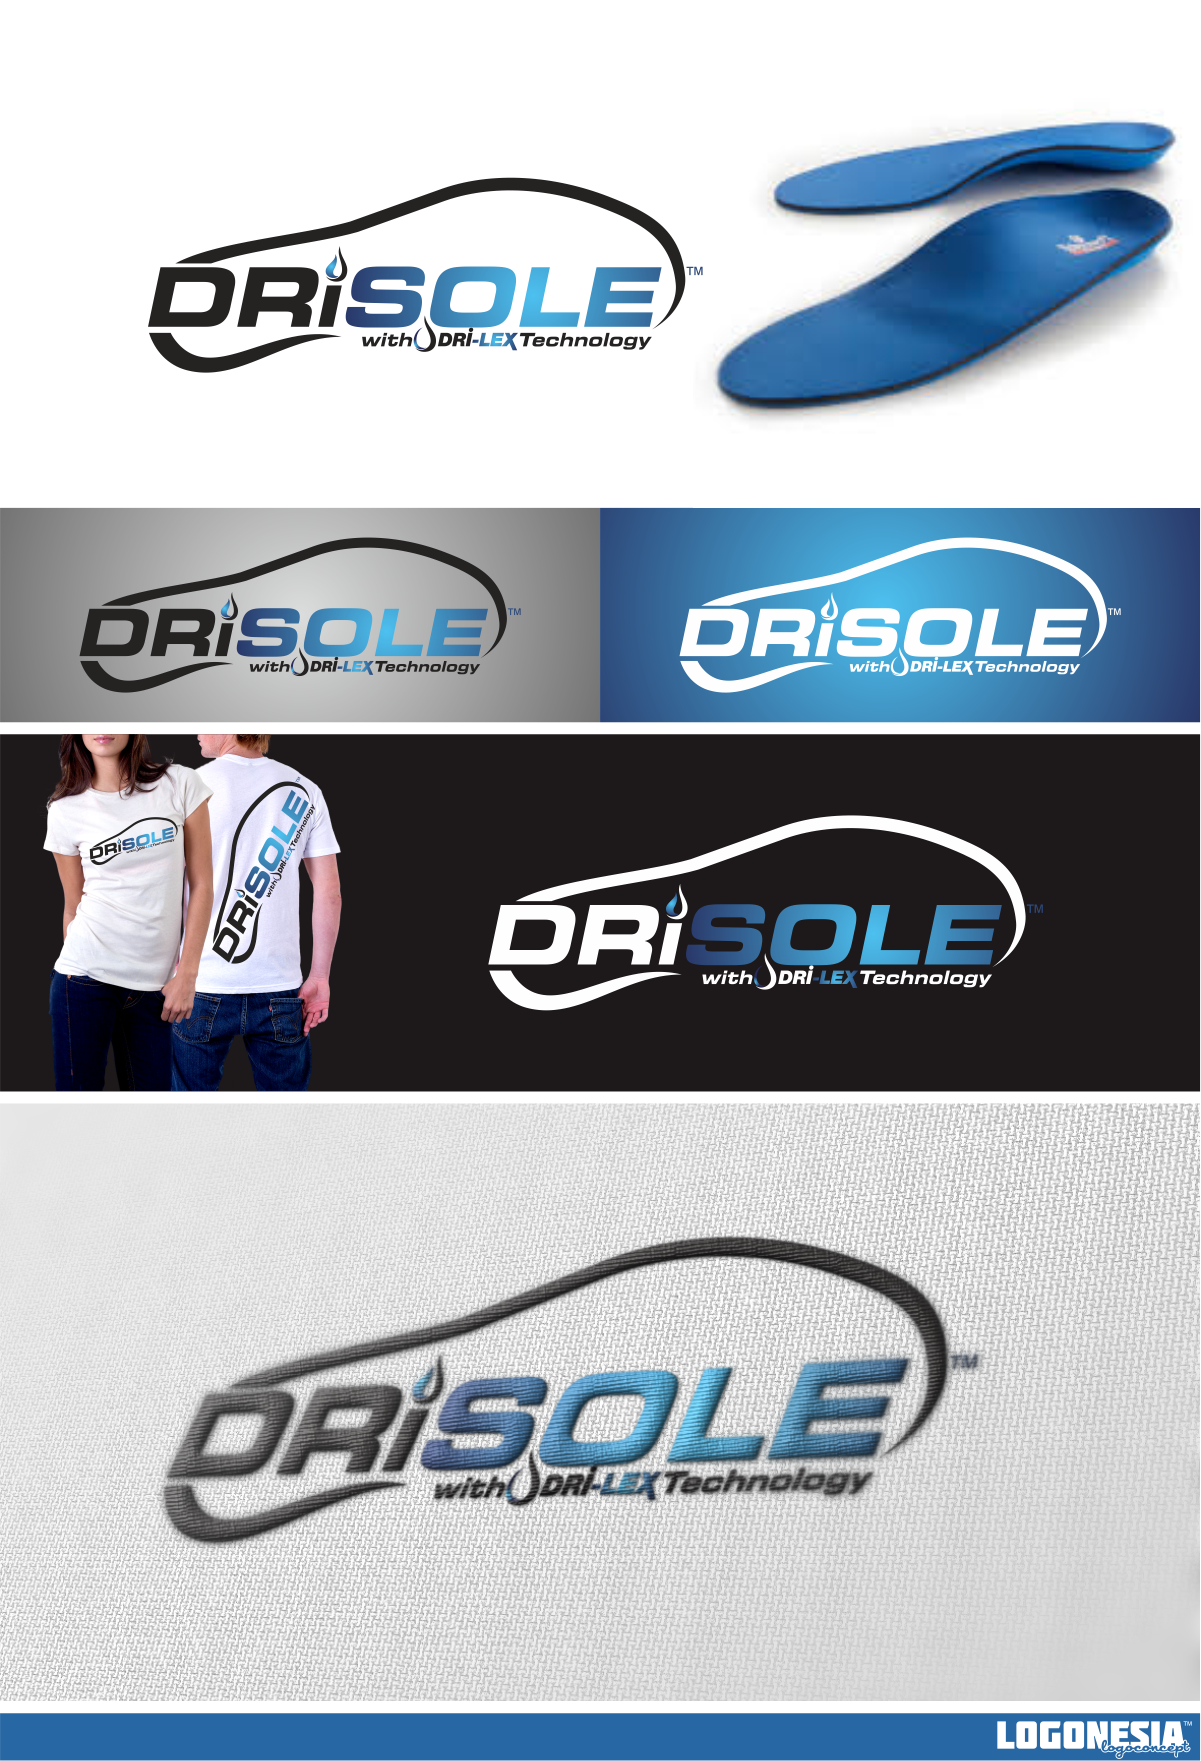 ***LOGO FOR SHOE INSOLE COMPANY NEEDED!!!***